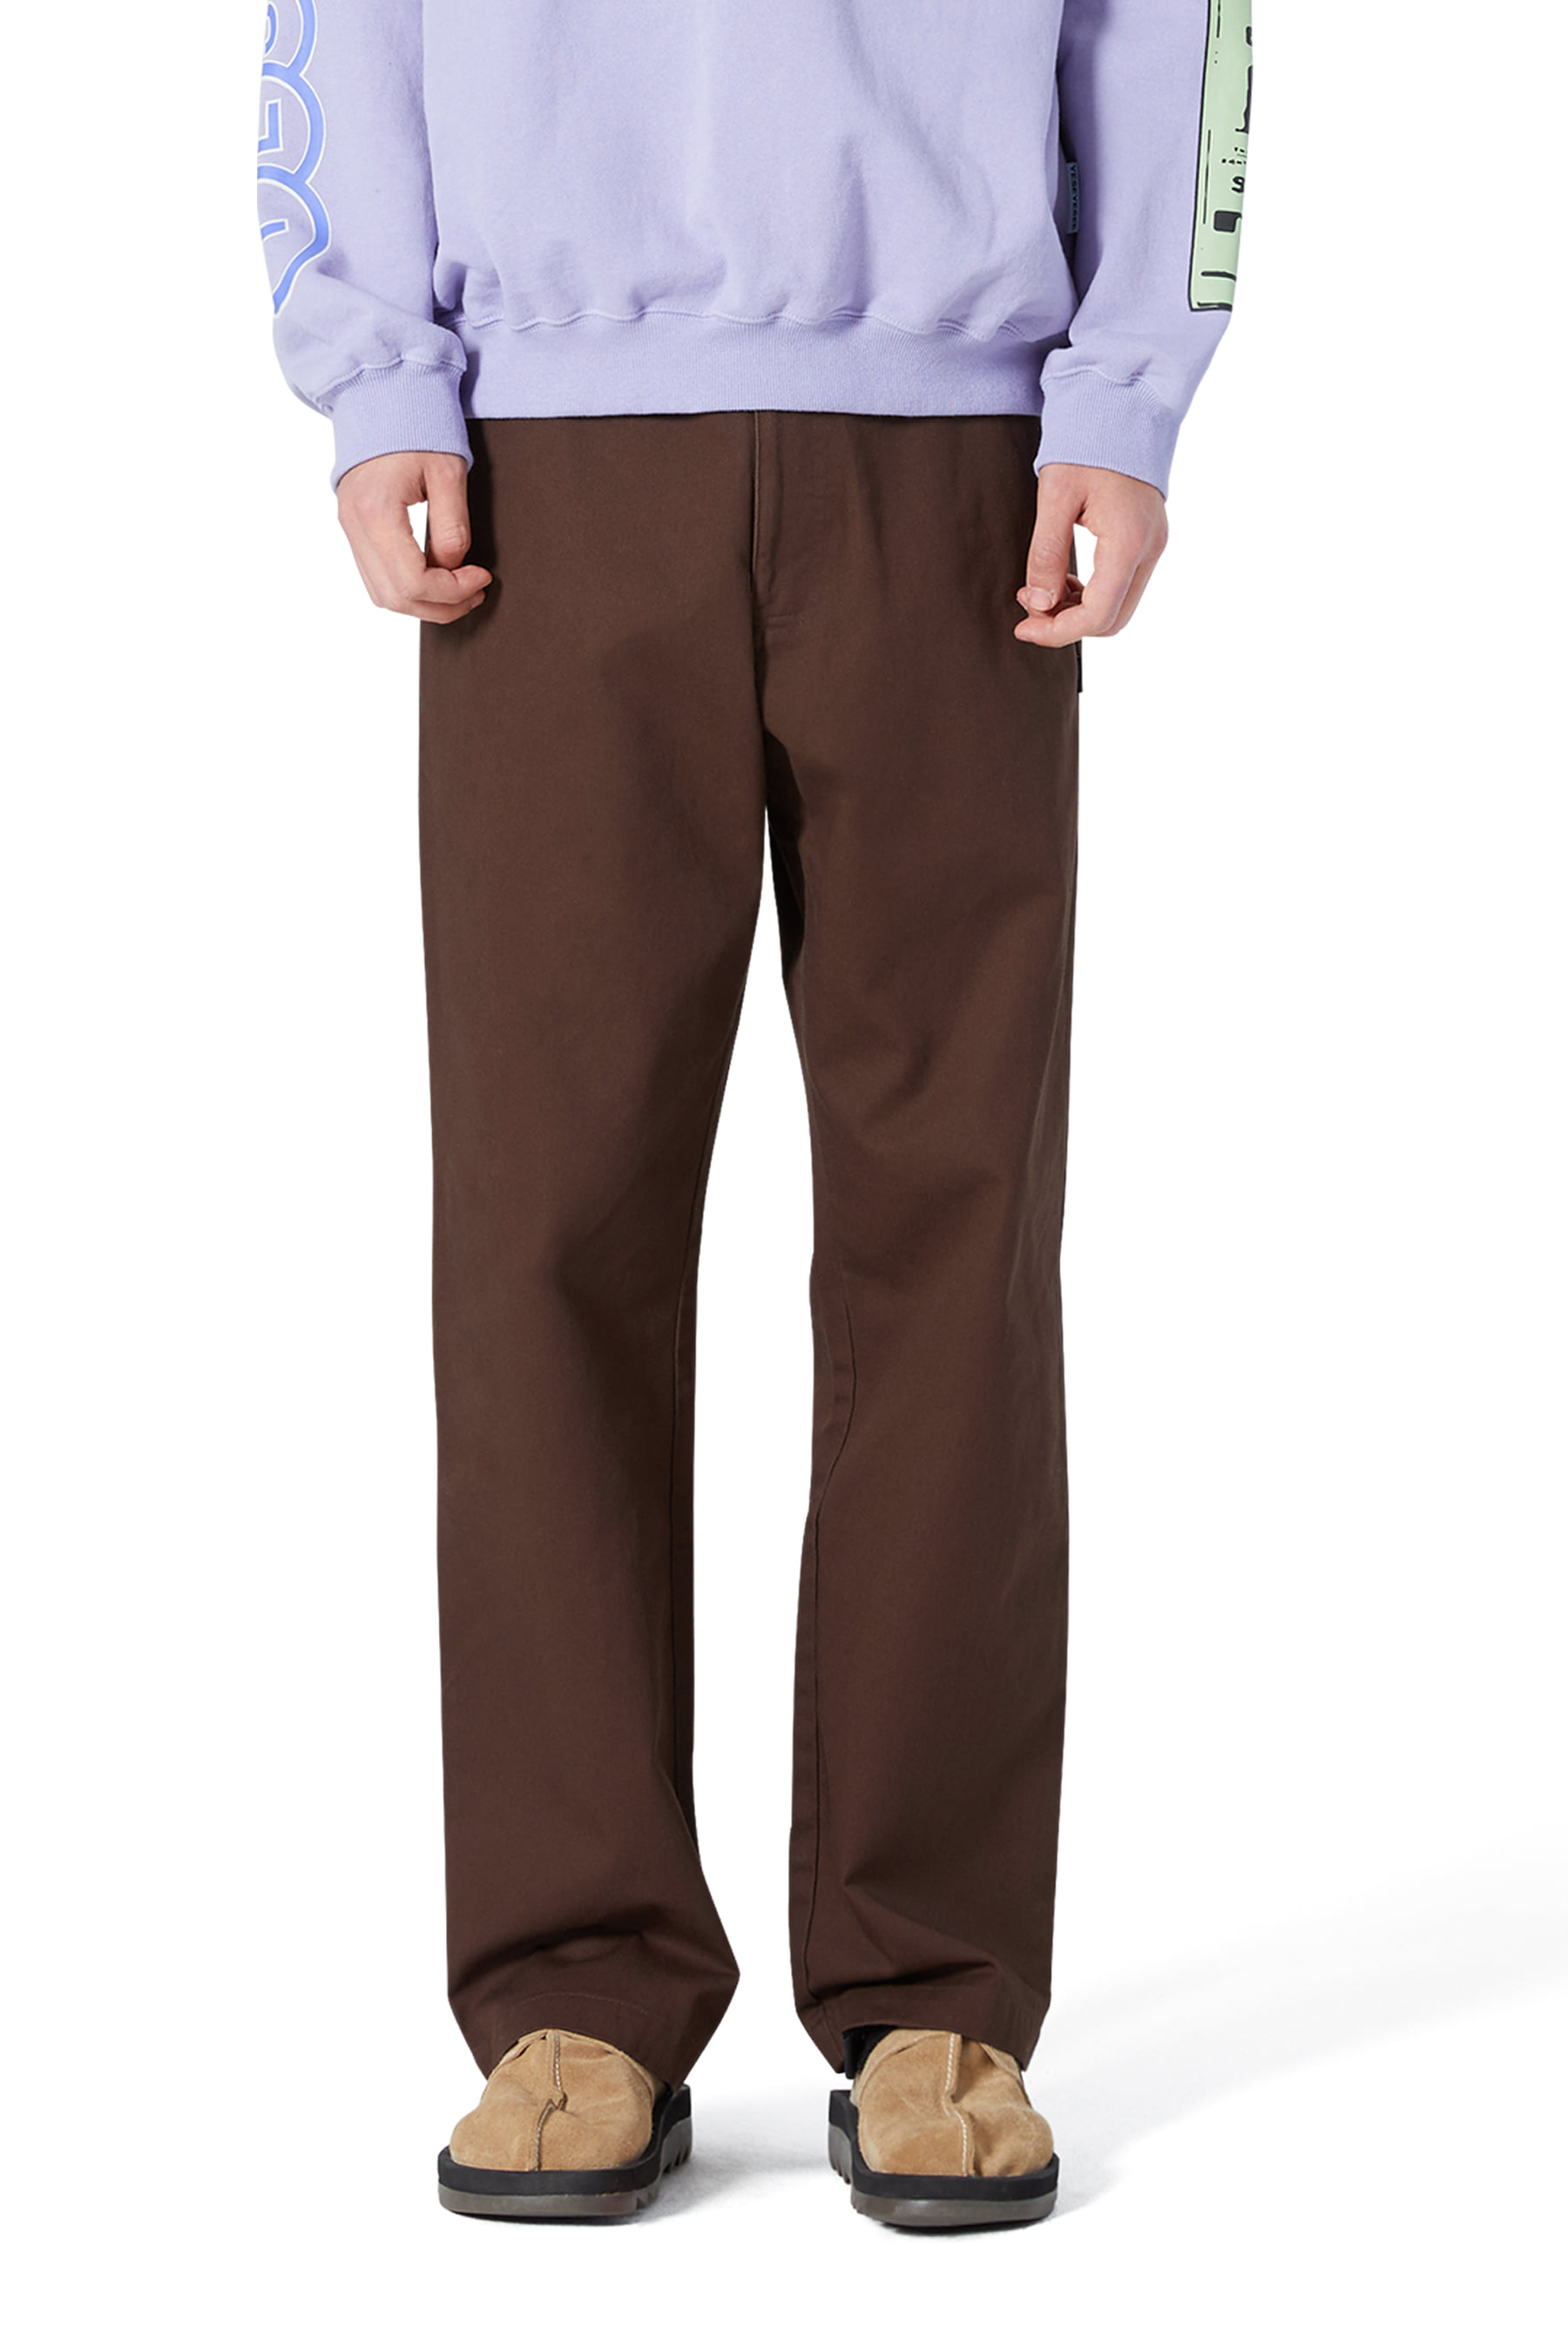 Clover Chino Pants Brown